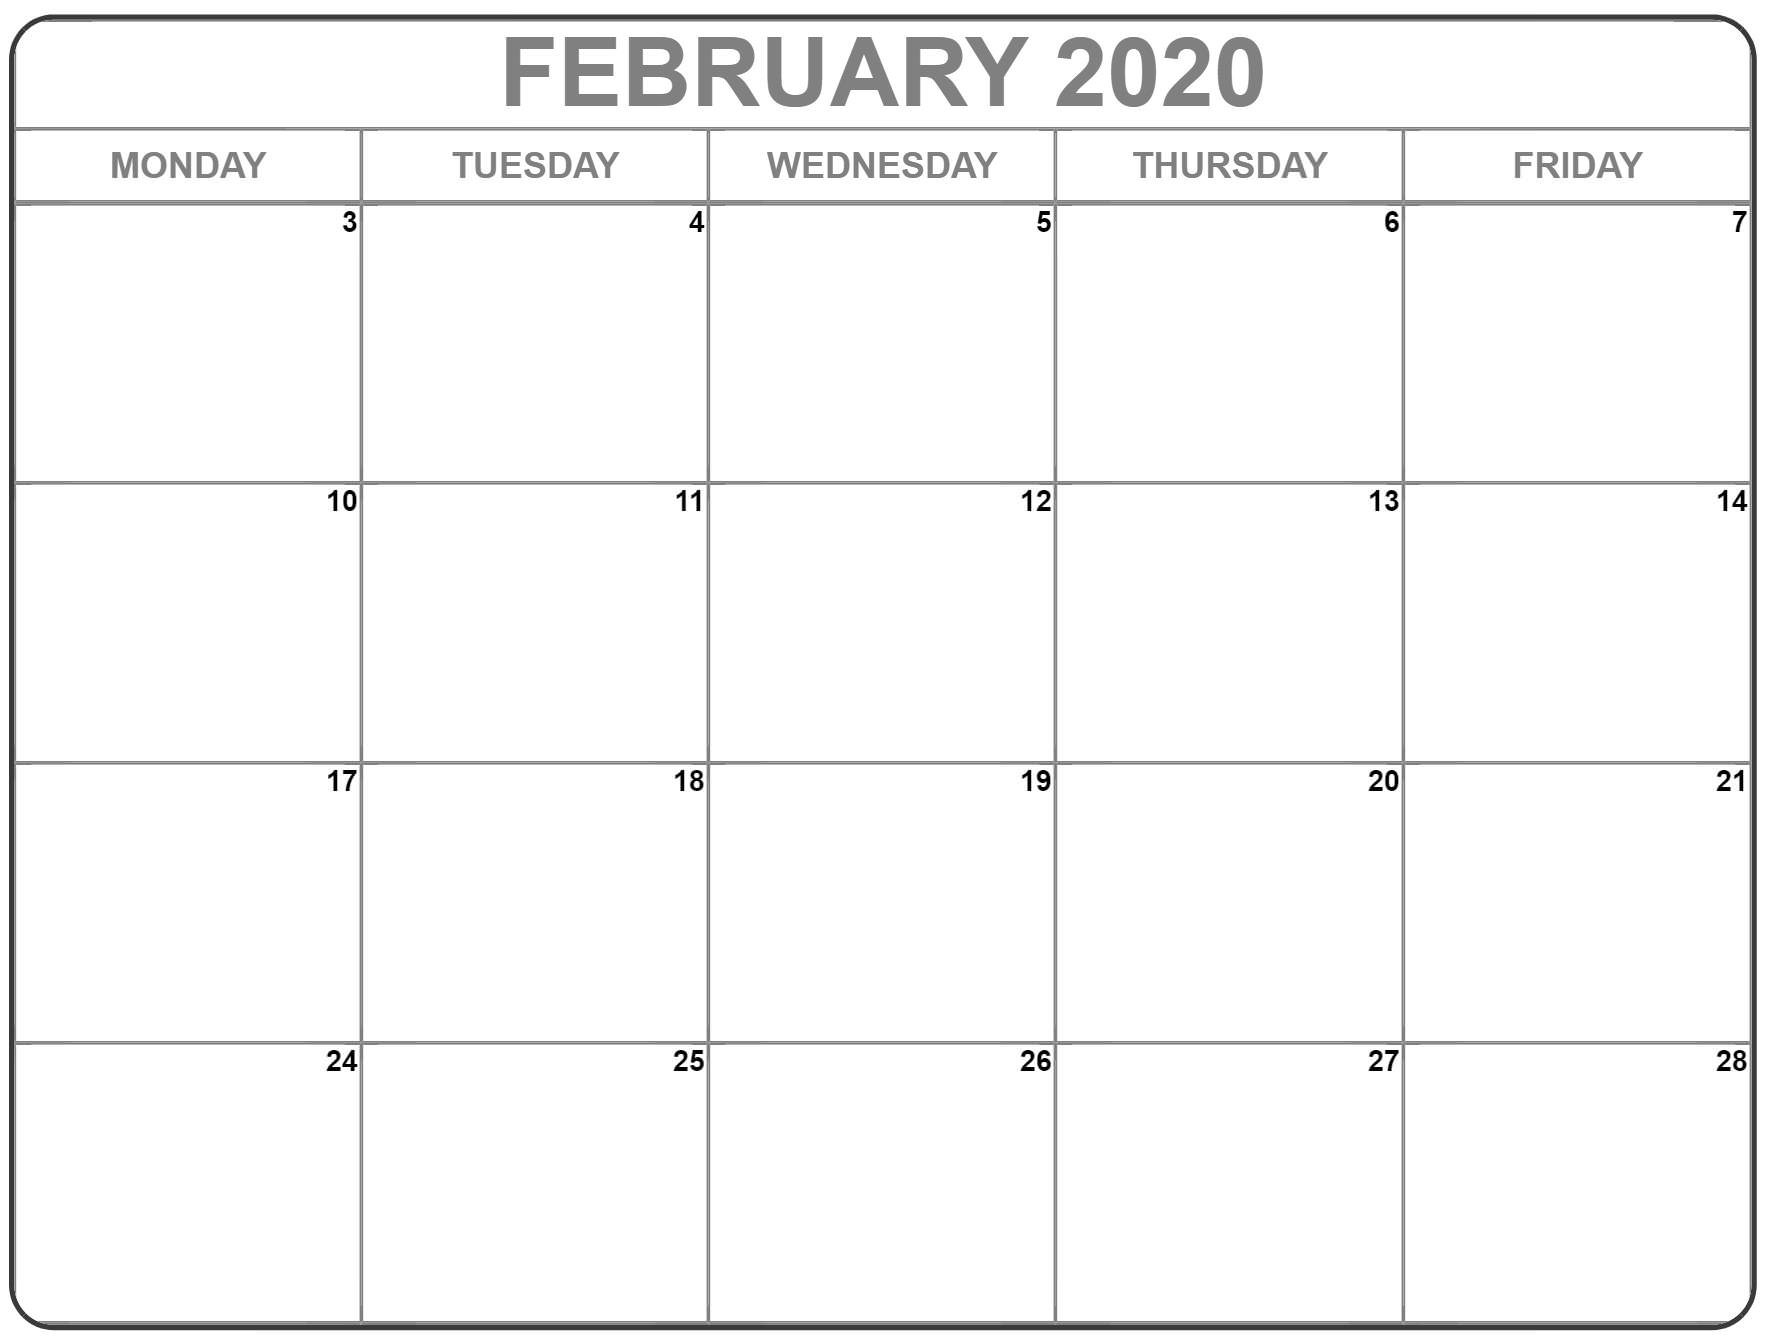 February 2020 Monday Calendar | Monday To Sunday Free Printable Monday Through Friday Calendar